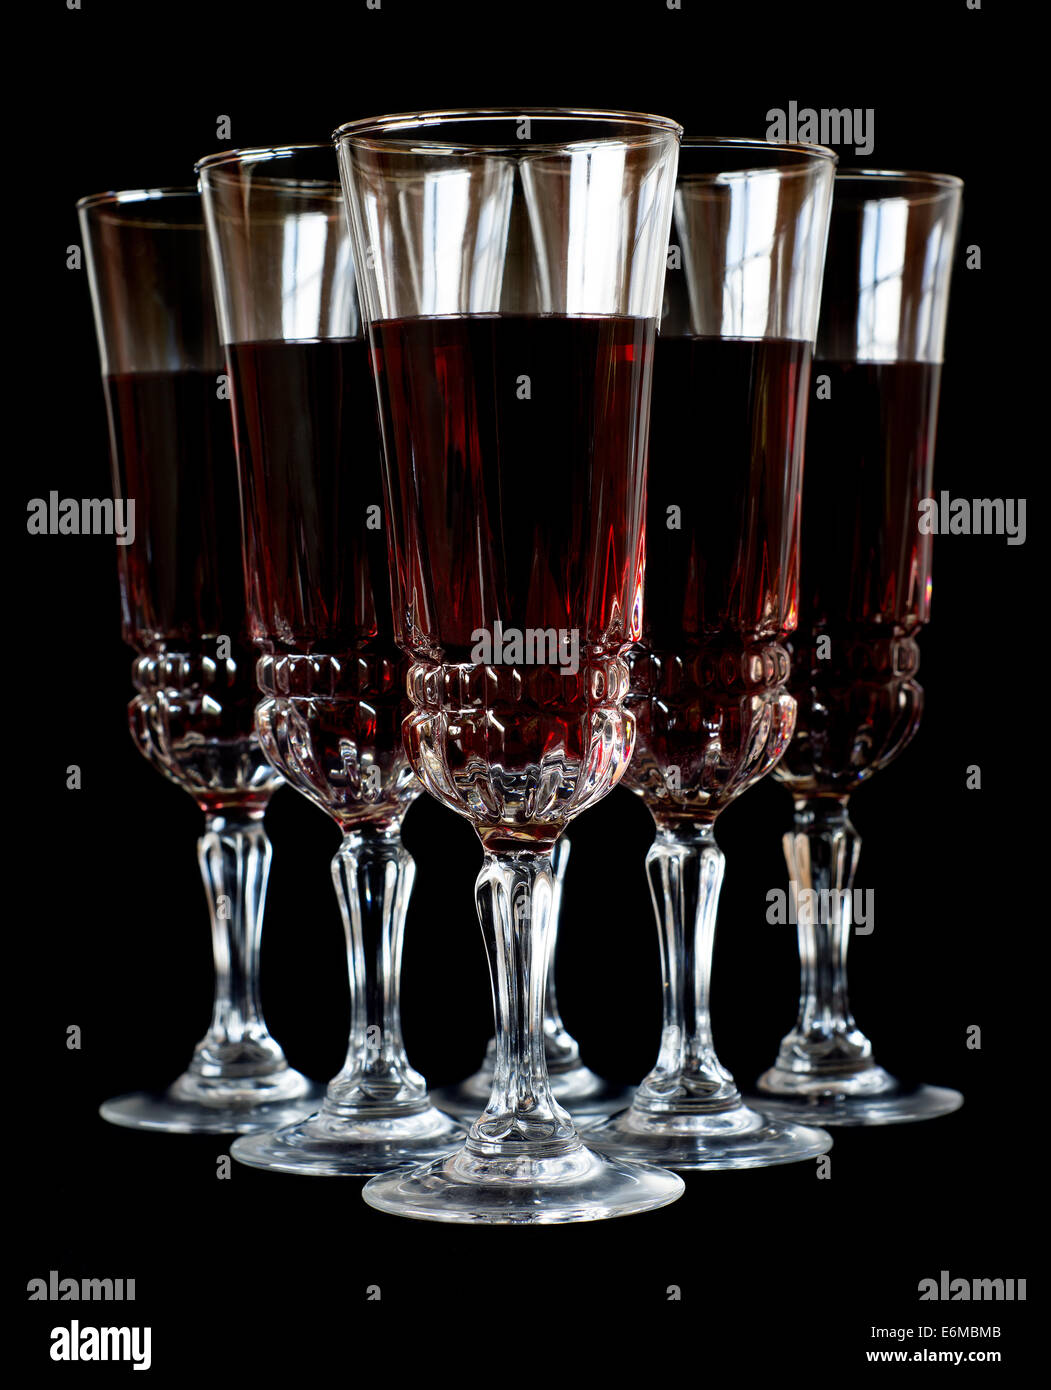 Wine glasses isolated over black background - Stock Image